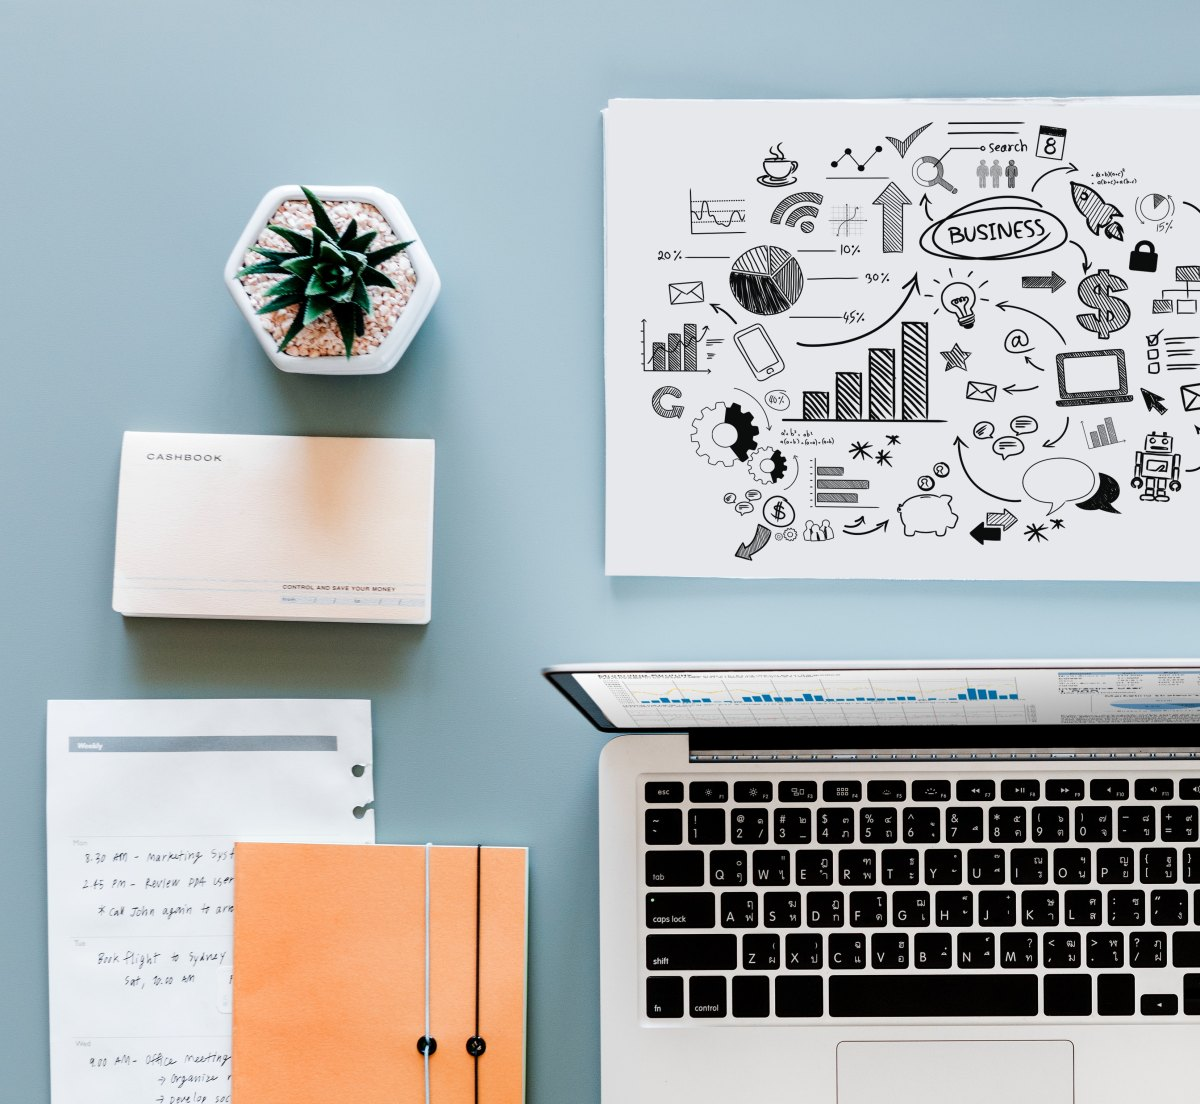 Business planning on a desk